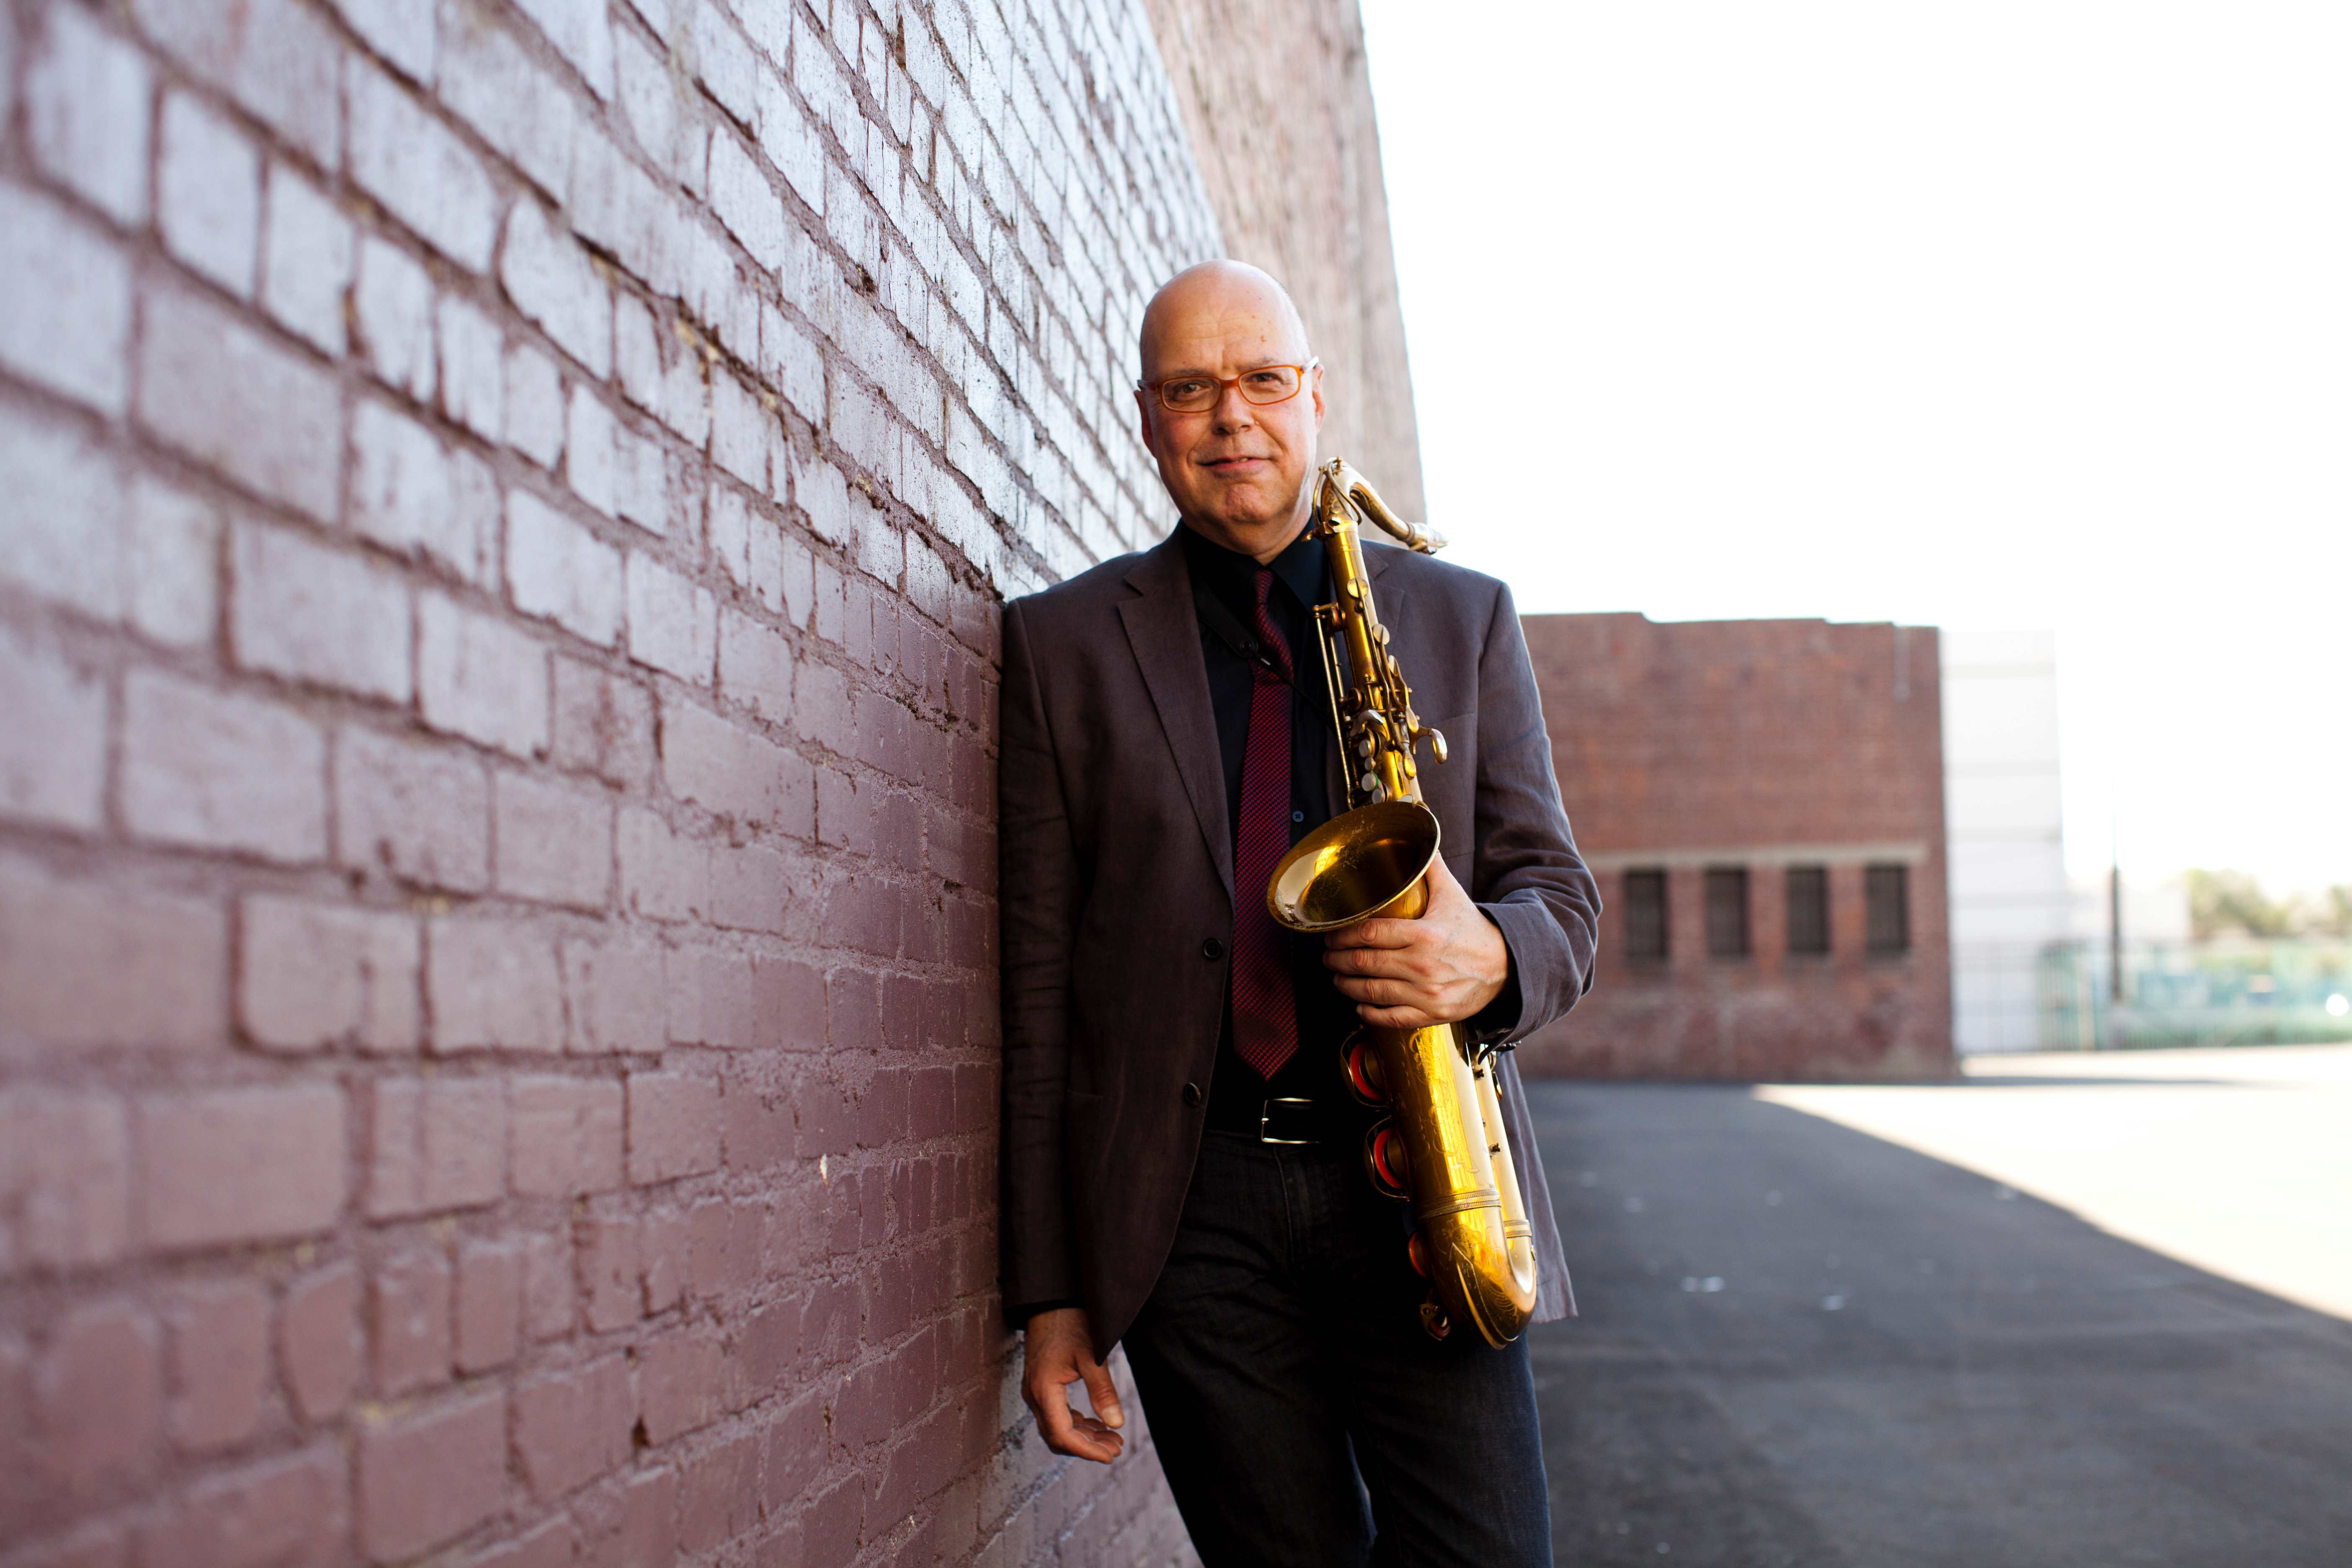 Bob Sheppard leaning against a brick wall holding a saxophone